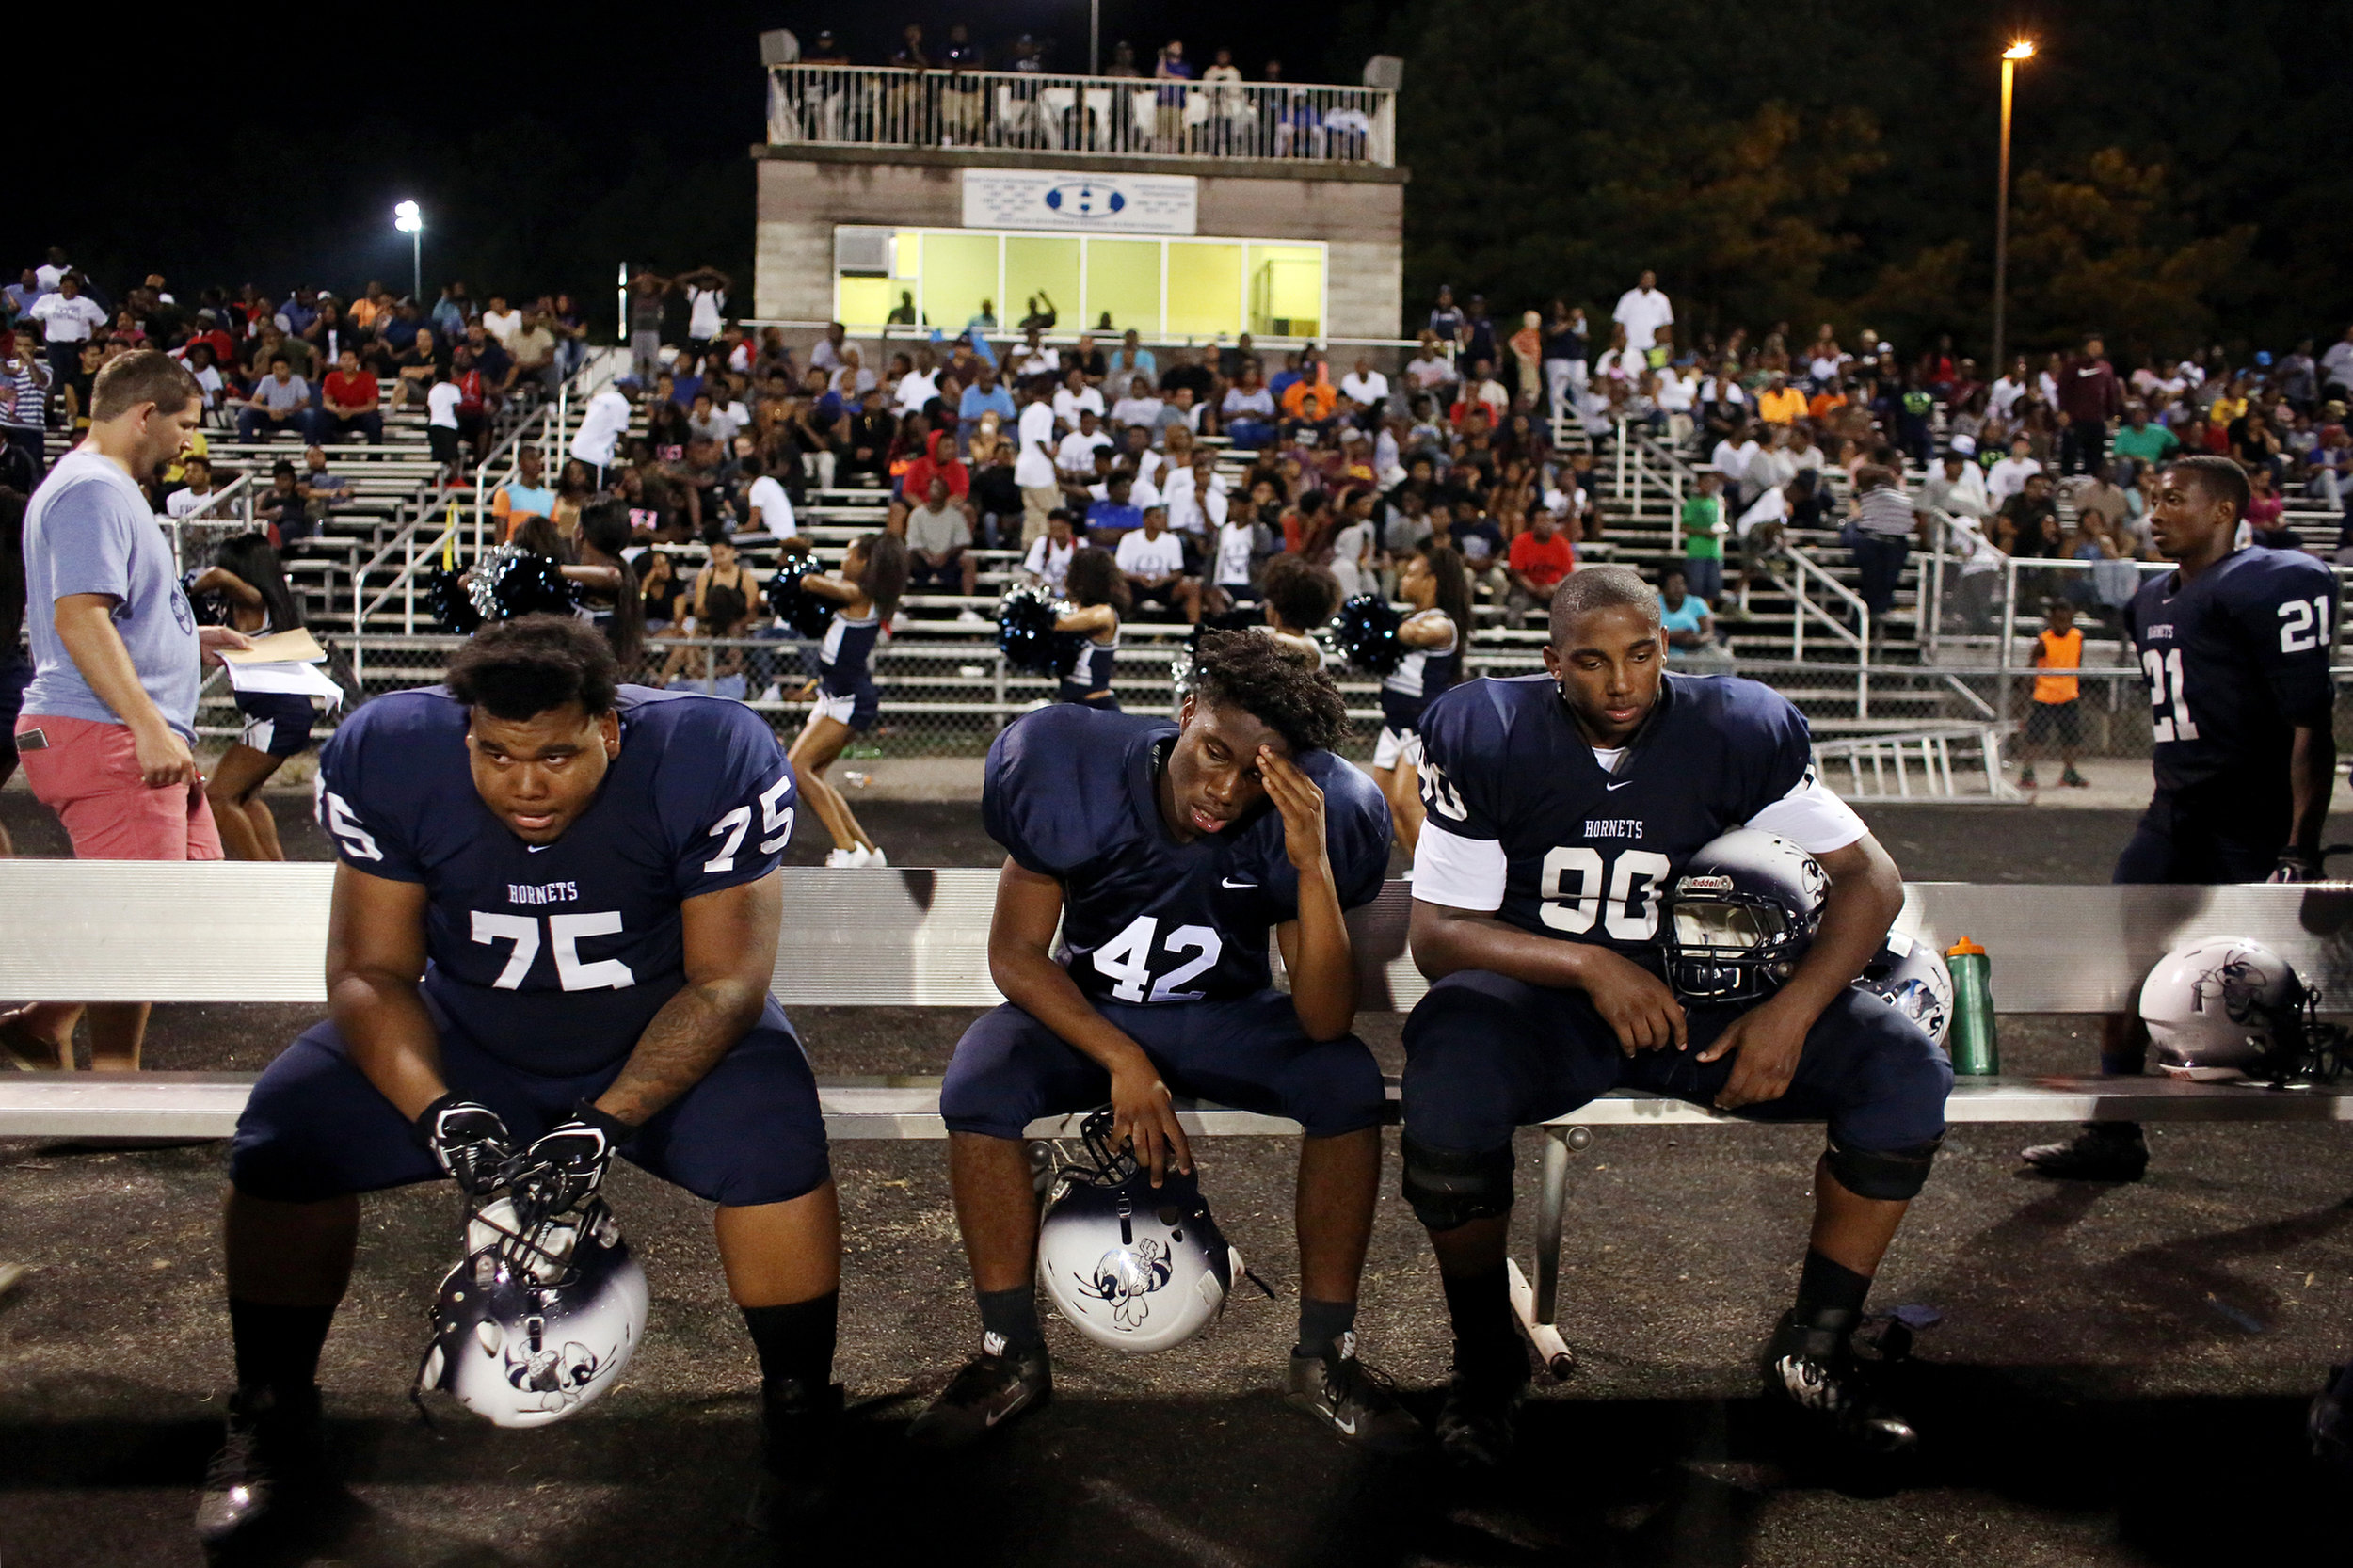 Hillside's Devonta Horton, from left, Saviya Moore, and David Gray sit on their team's bench late game against Dudley High School, Sept. 9, 2016, at Hillside High School. Hillside lost, 32-26, the team's only loss of the regular season.